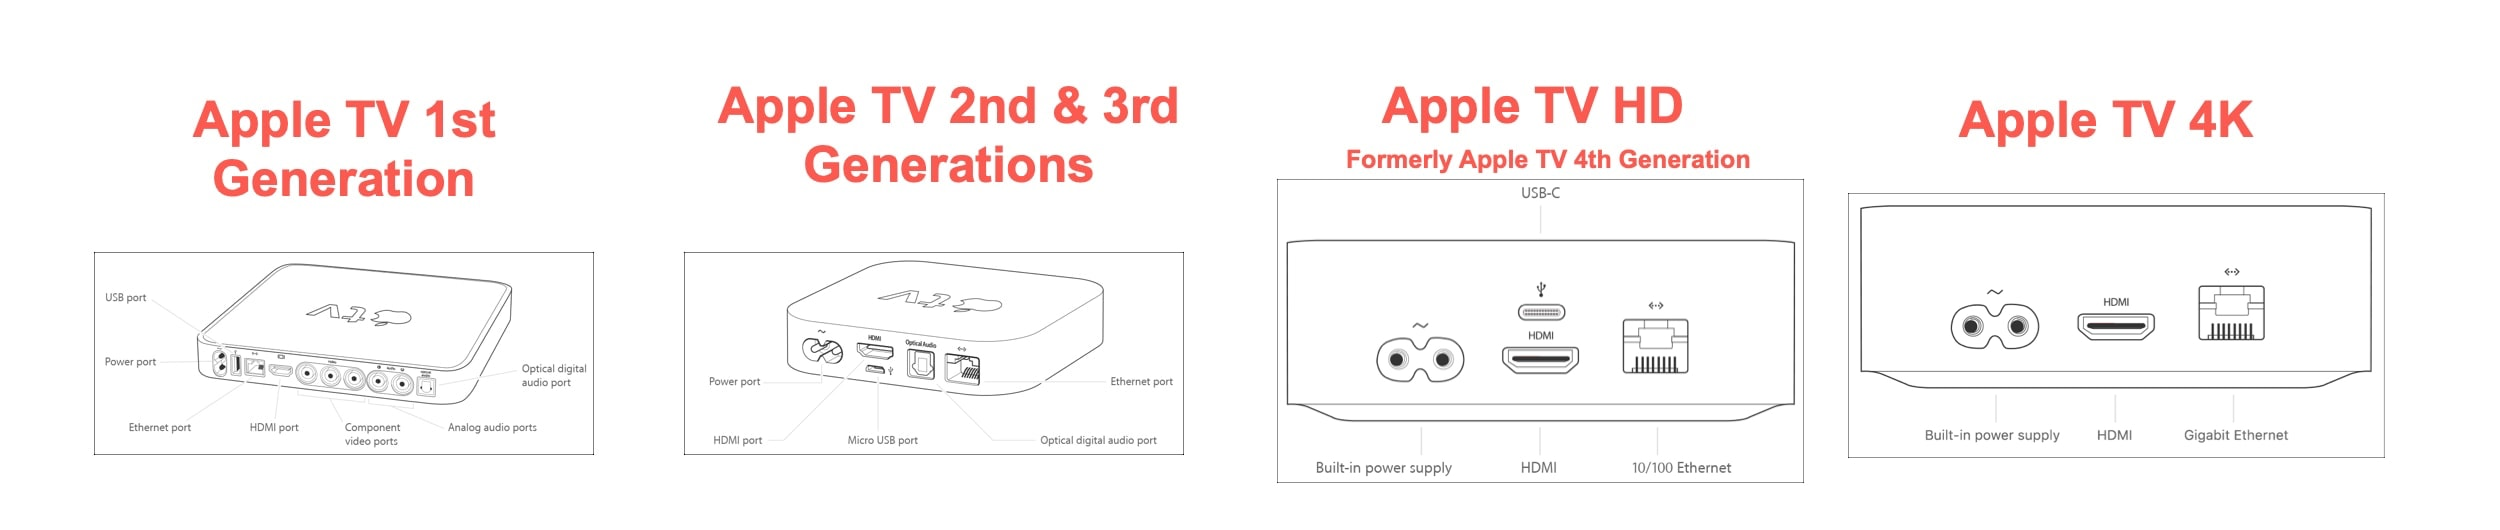 Apple TV Physical Models